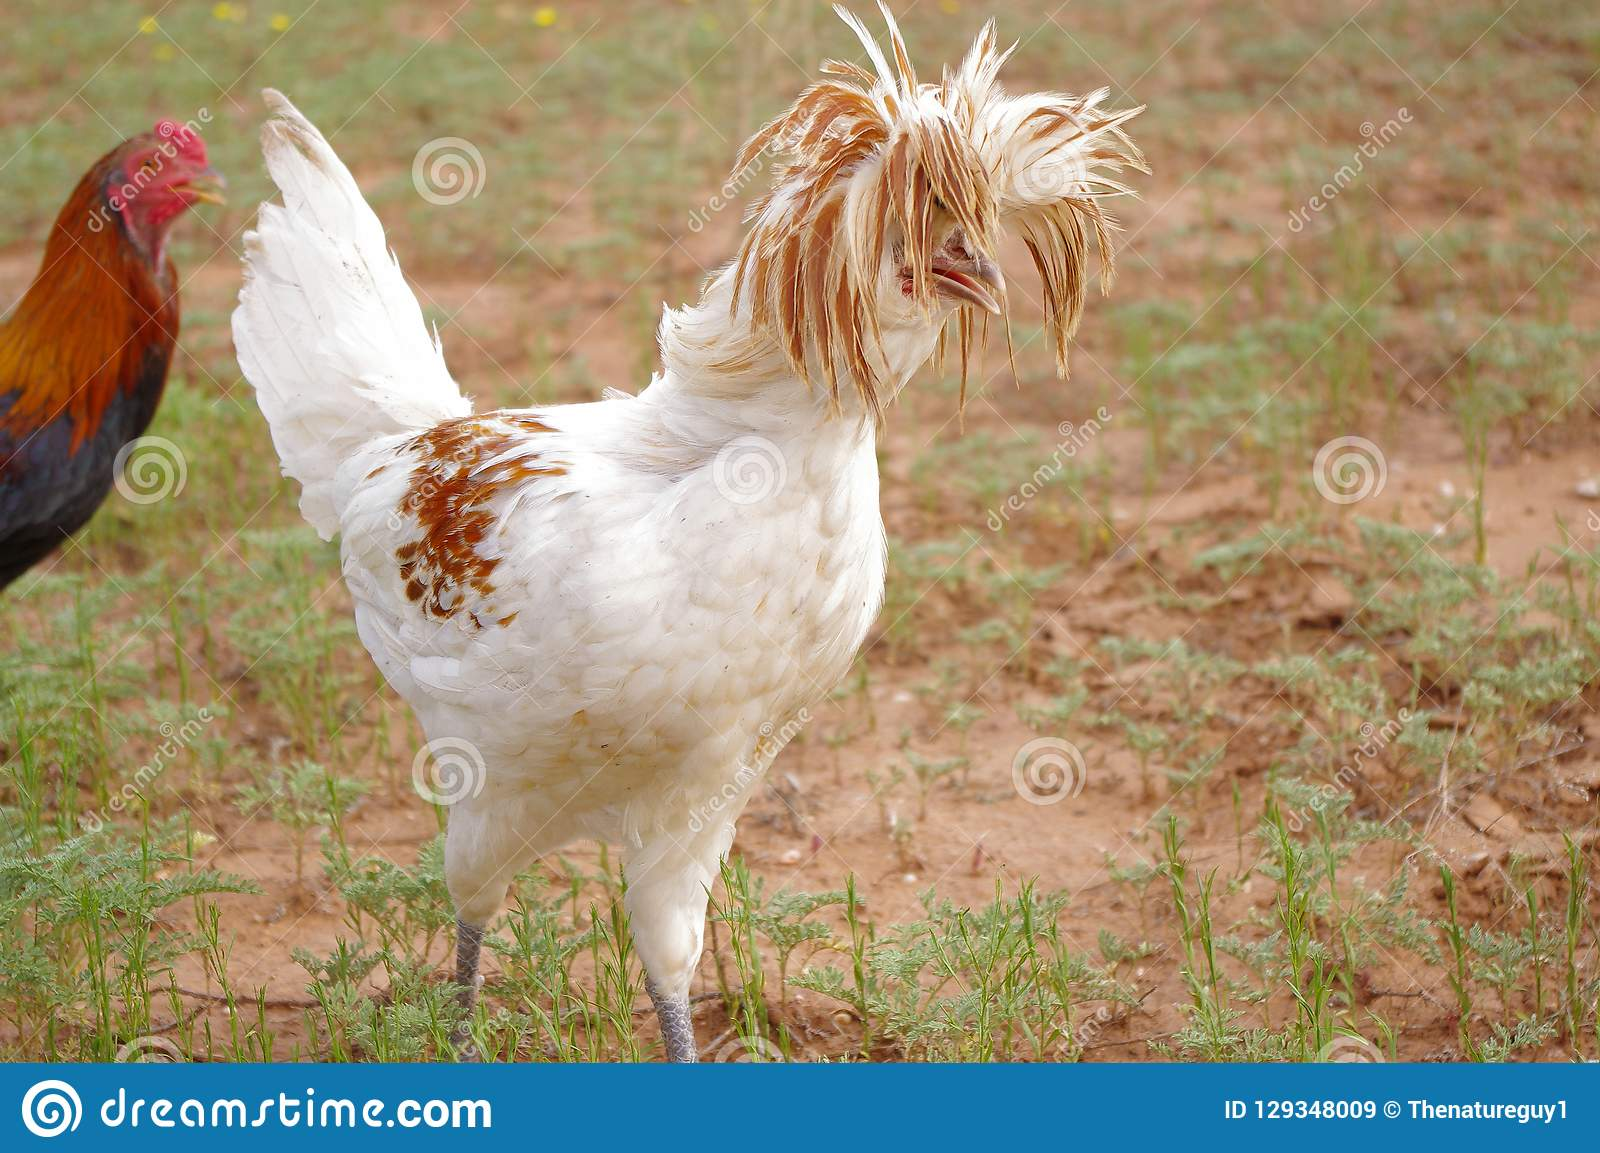 Crazy Hairdo Of A Polish Crested Rooster Stock Image Image Of